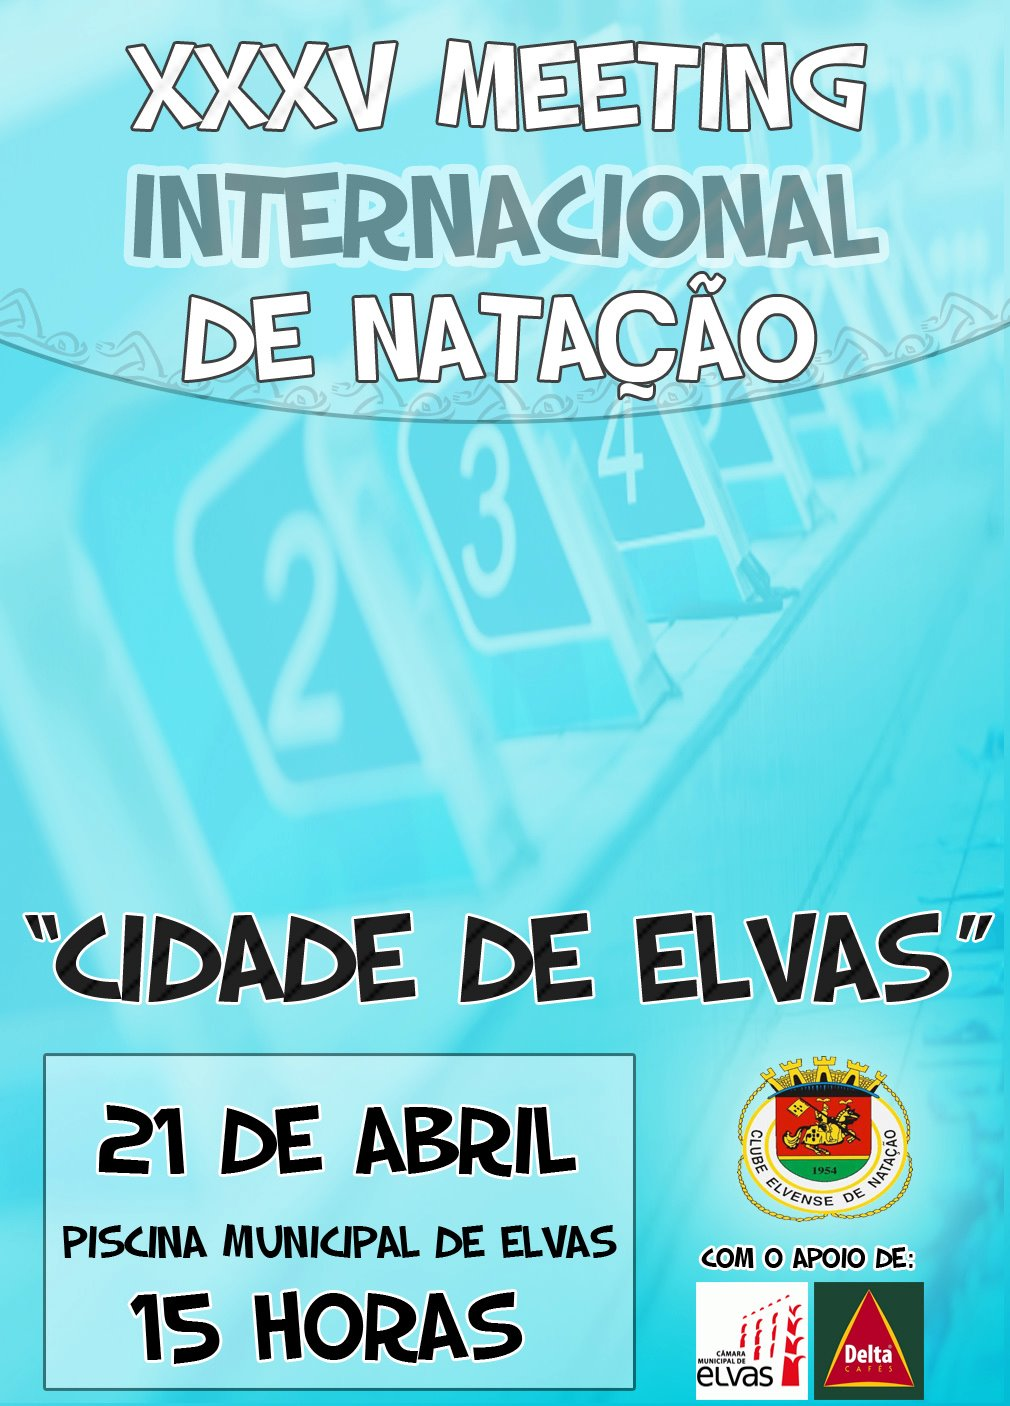 Cen xxxv meeting internacional de nata o cidade de elvas for Piscina elvas